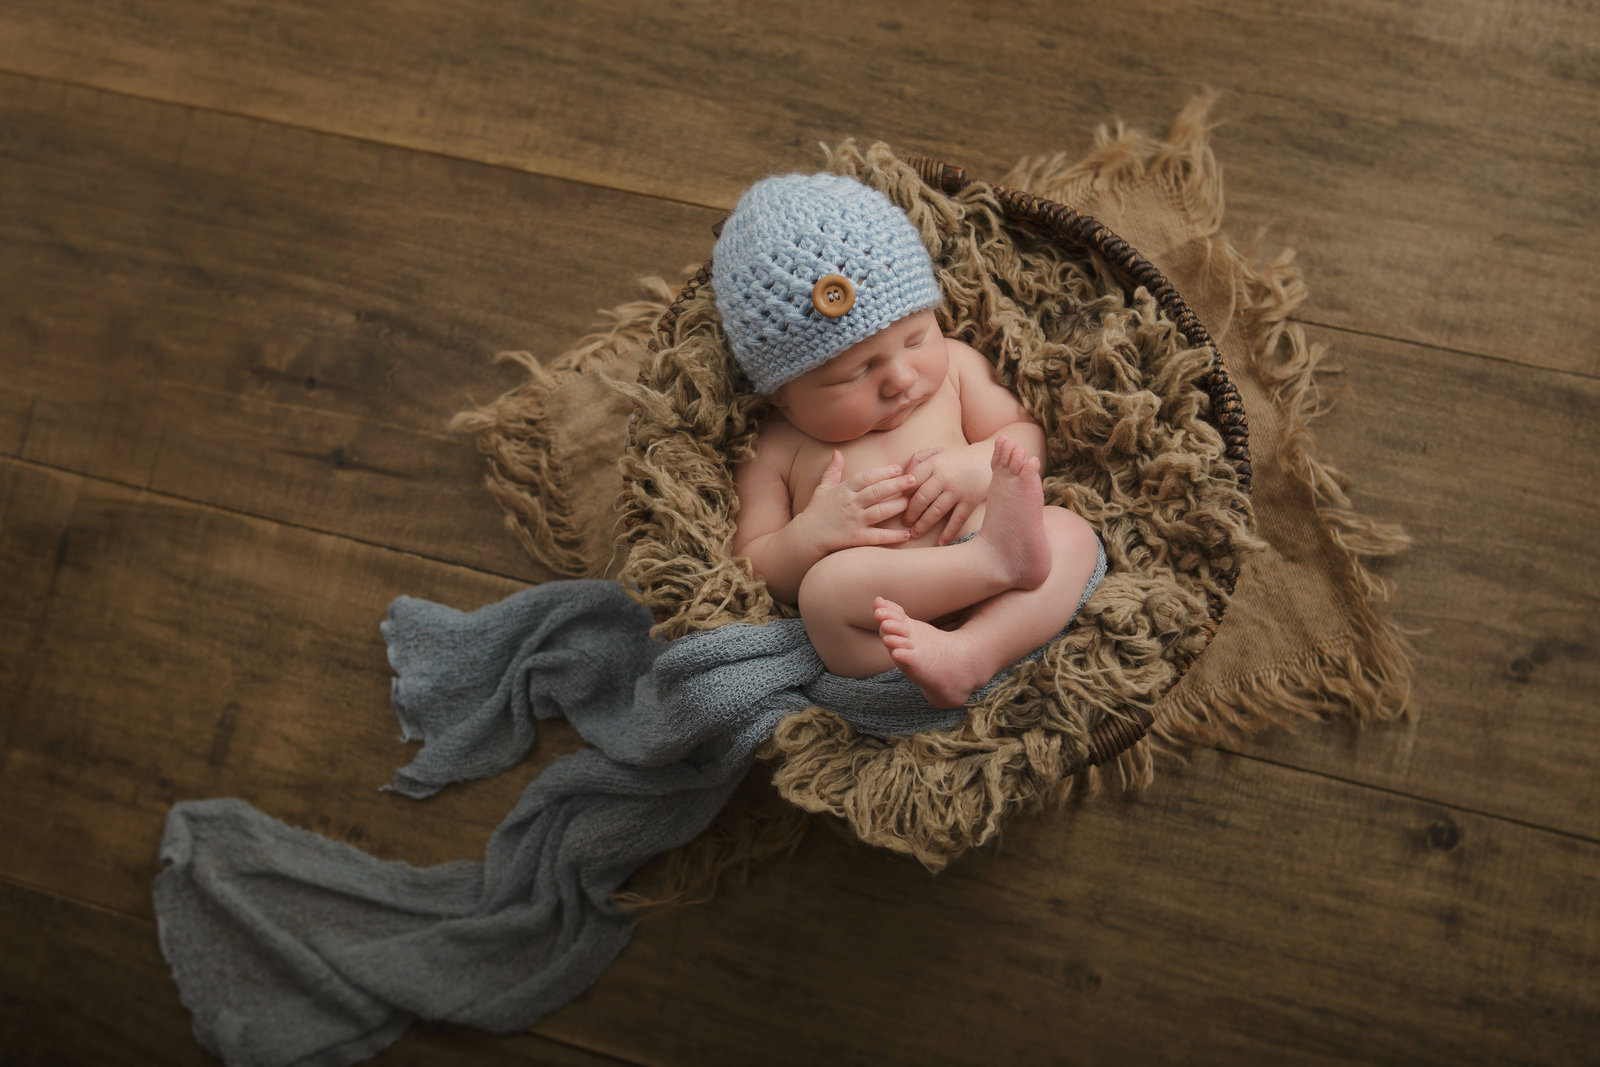 newborn baby boy curled up in a basket with fur and burlap on wood floor wearing a knit hat in the Hudson Valley NY by professional photographer Autumn Photography